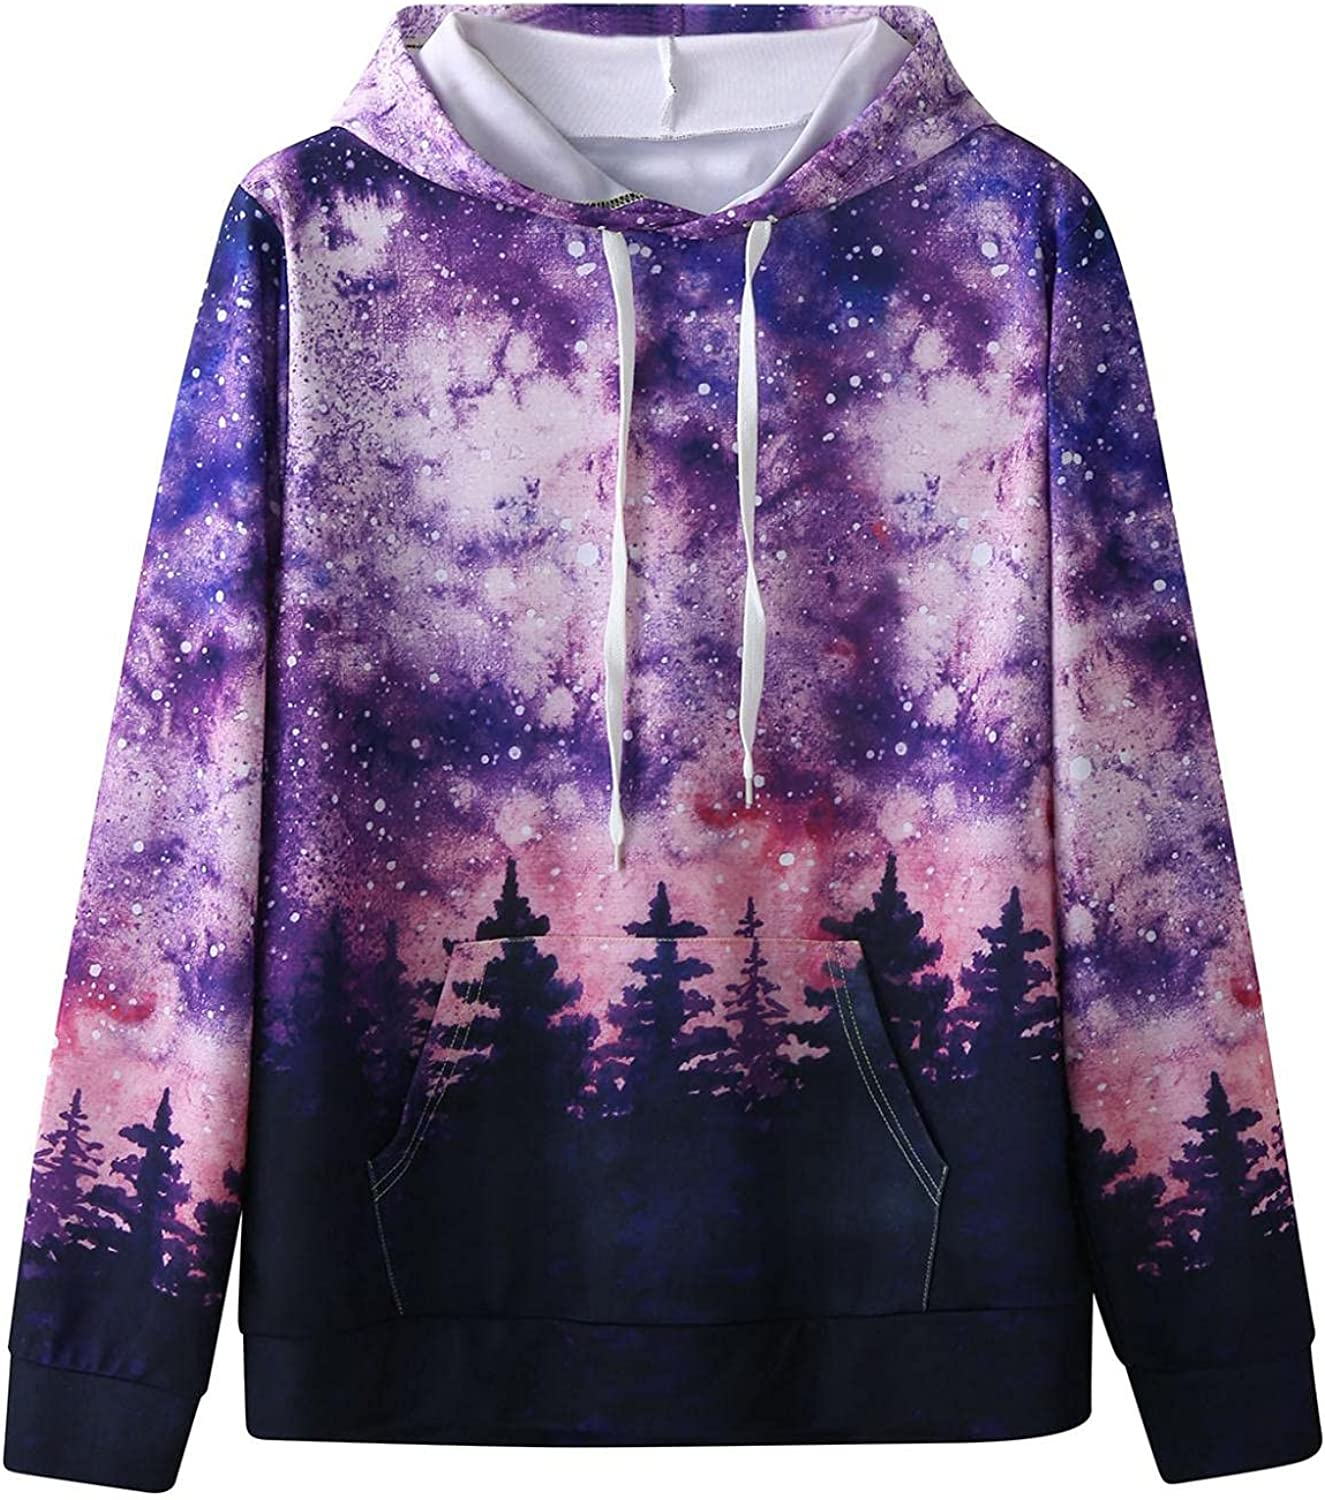 Qsctys Mens Long Sleeve Hooded Print T-Shirt Sweatshirts Slim Fit Pullover Hoodie Shirt Lightweight Comfortable Thin Blouse